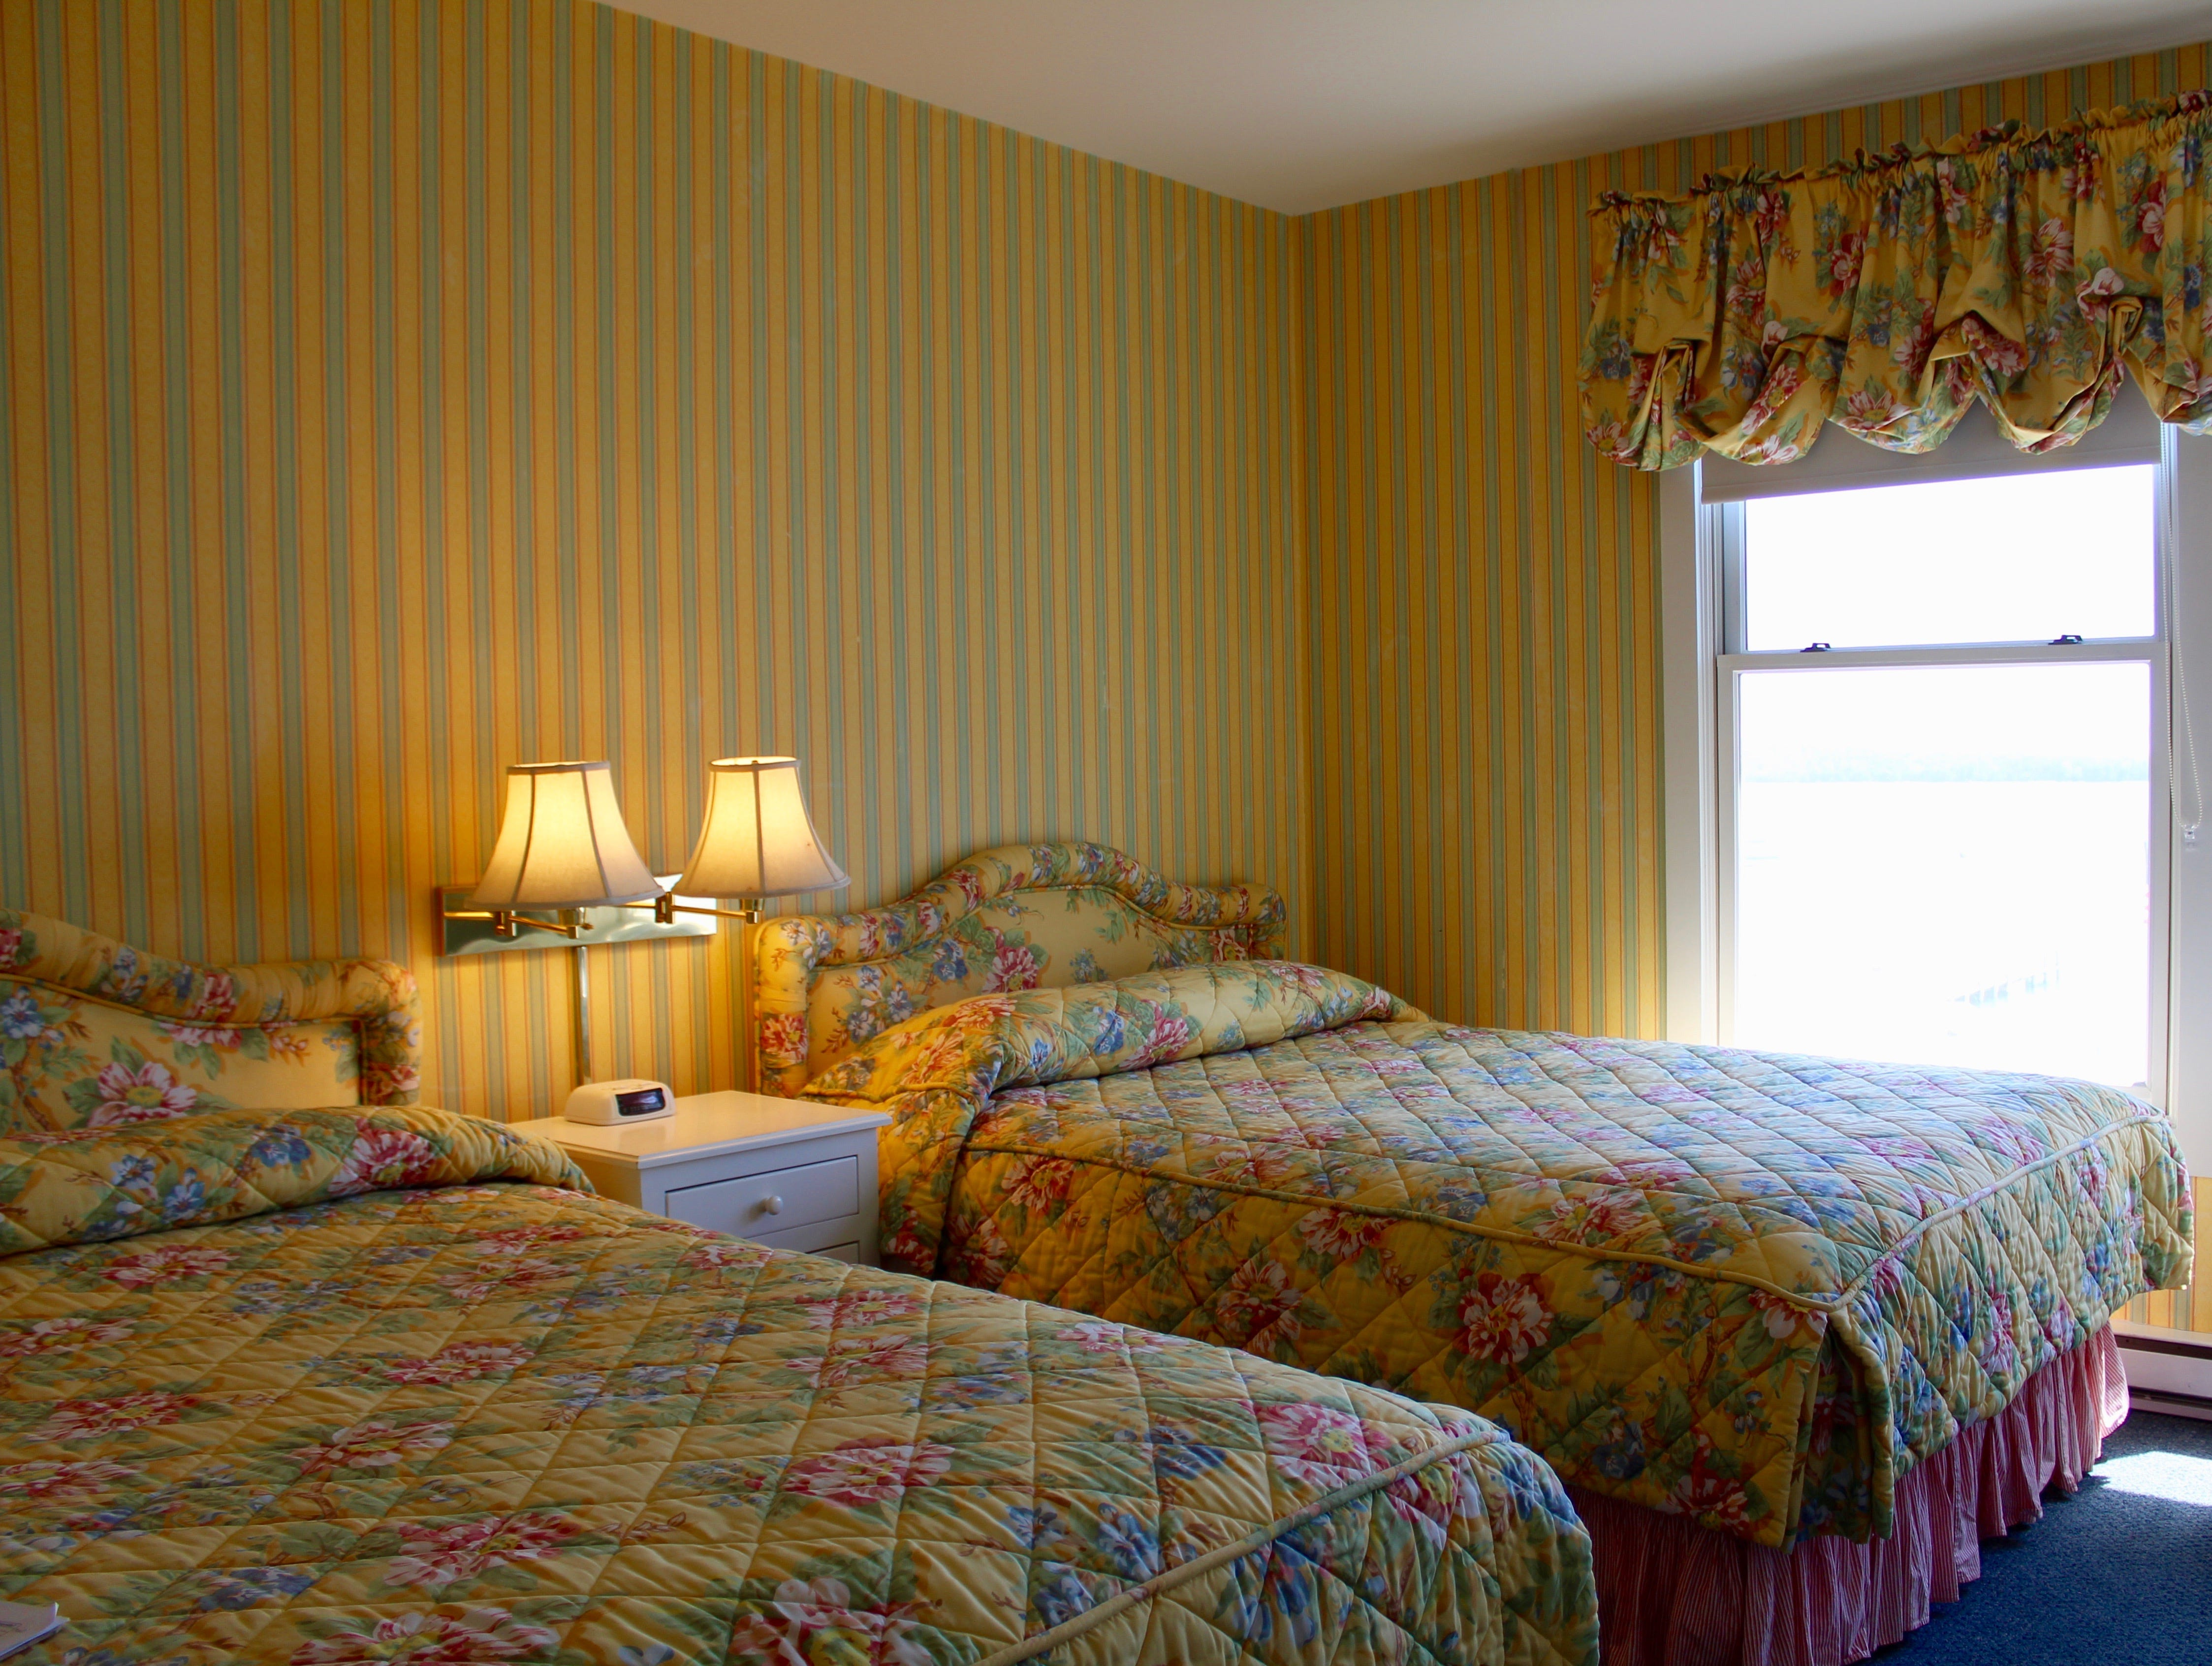 Pictured is one of the Island House Hotel rooms before renovations. The rooms were part of a four-year, $4 million, project at the Mackinac Island Historic Waterfront Hotel. The renovations included installing hardwood and adding phone charging stations.